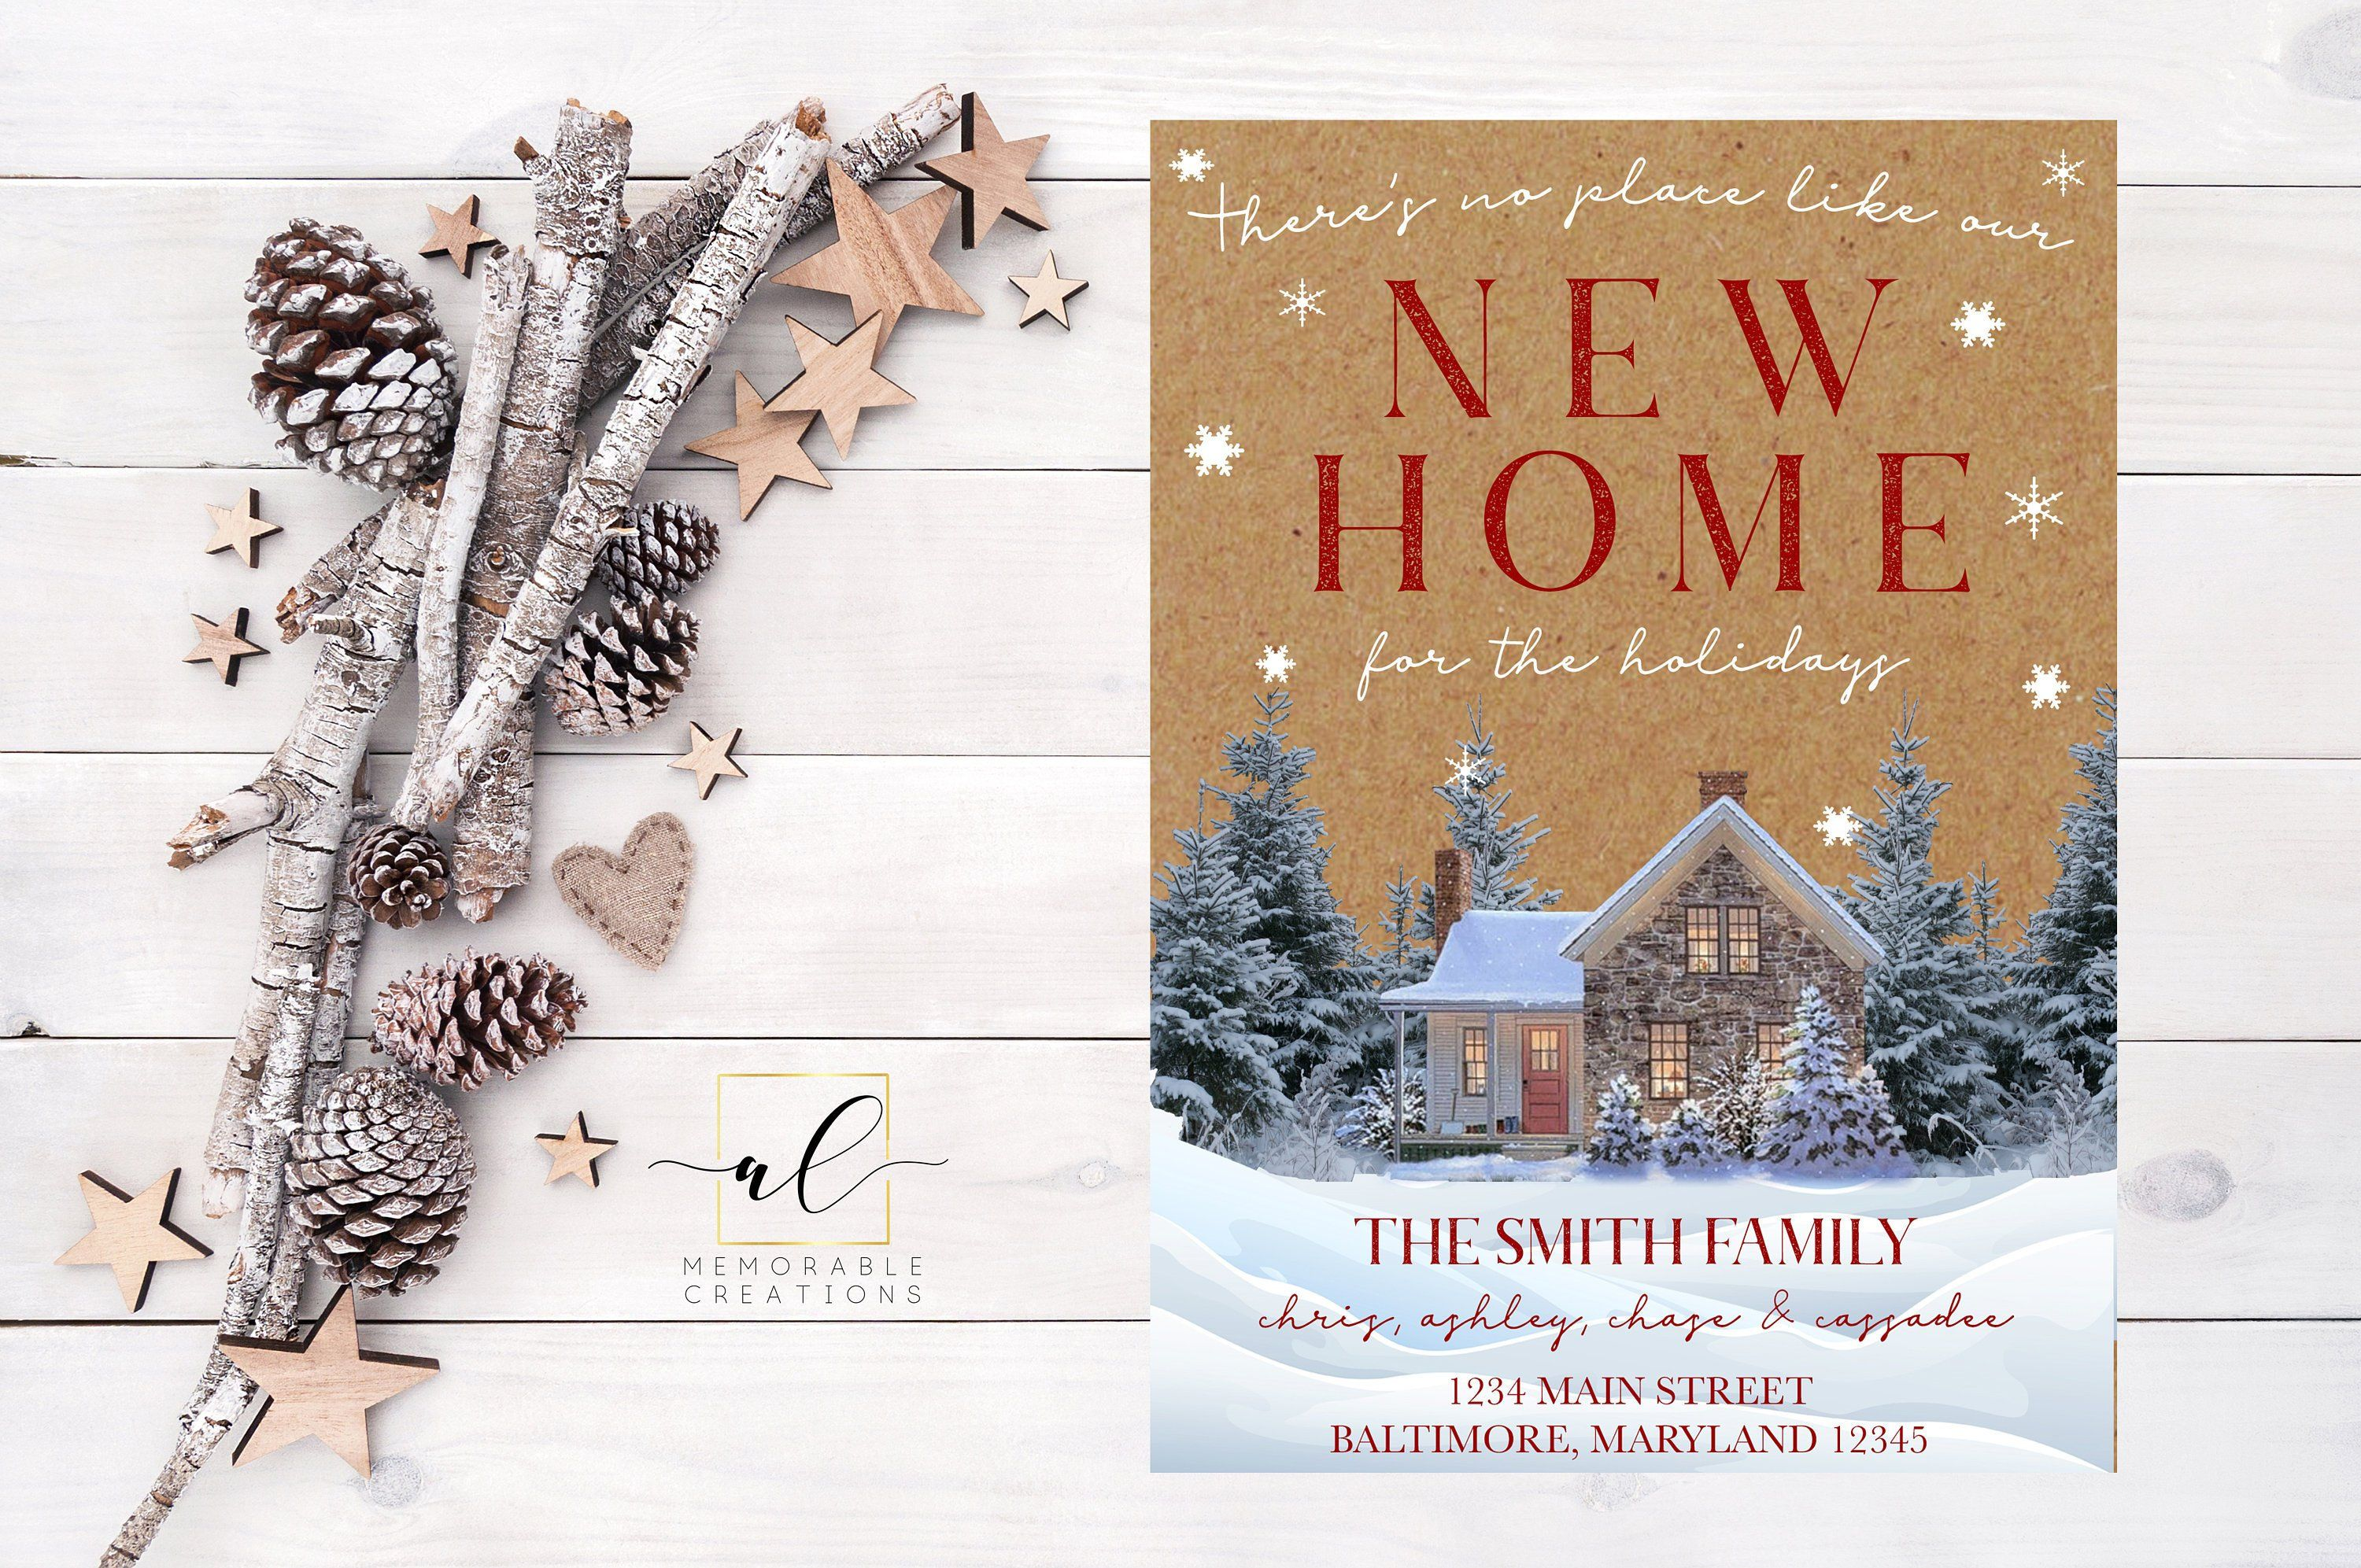 Home for the Holidays Address Change Announcement, Holiday Moving ...